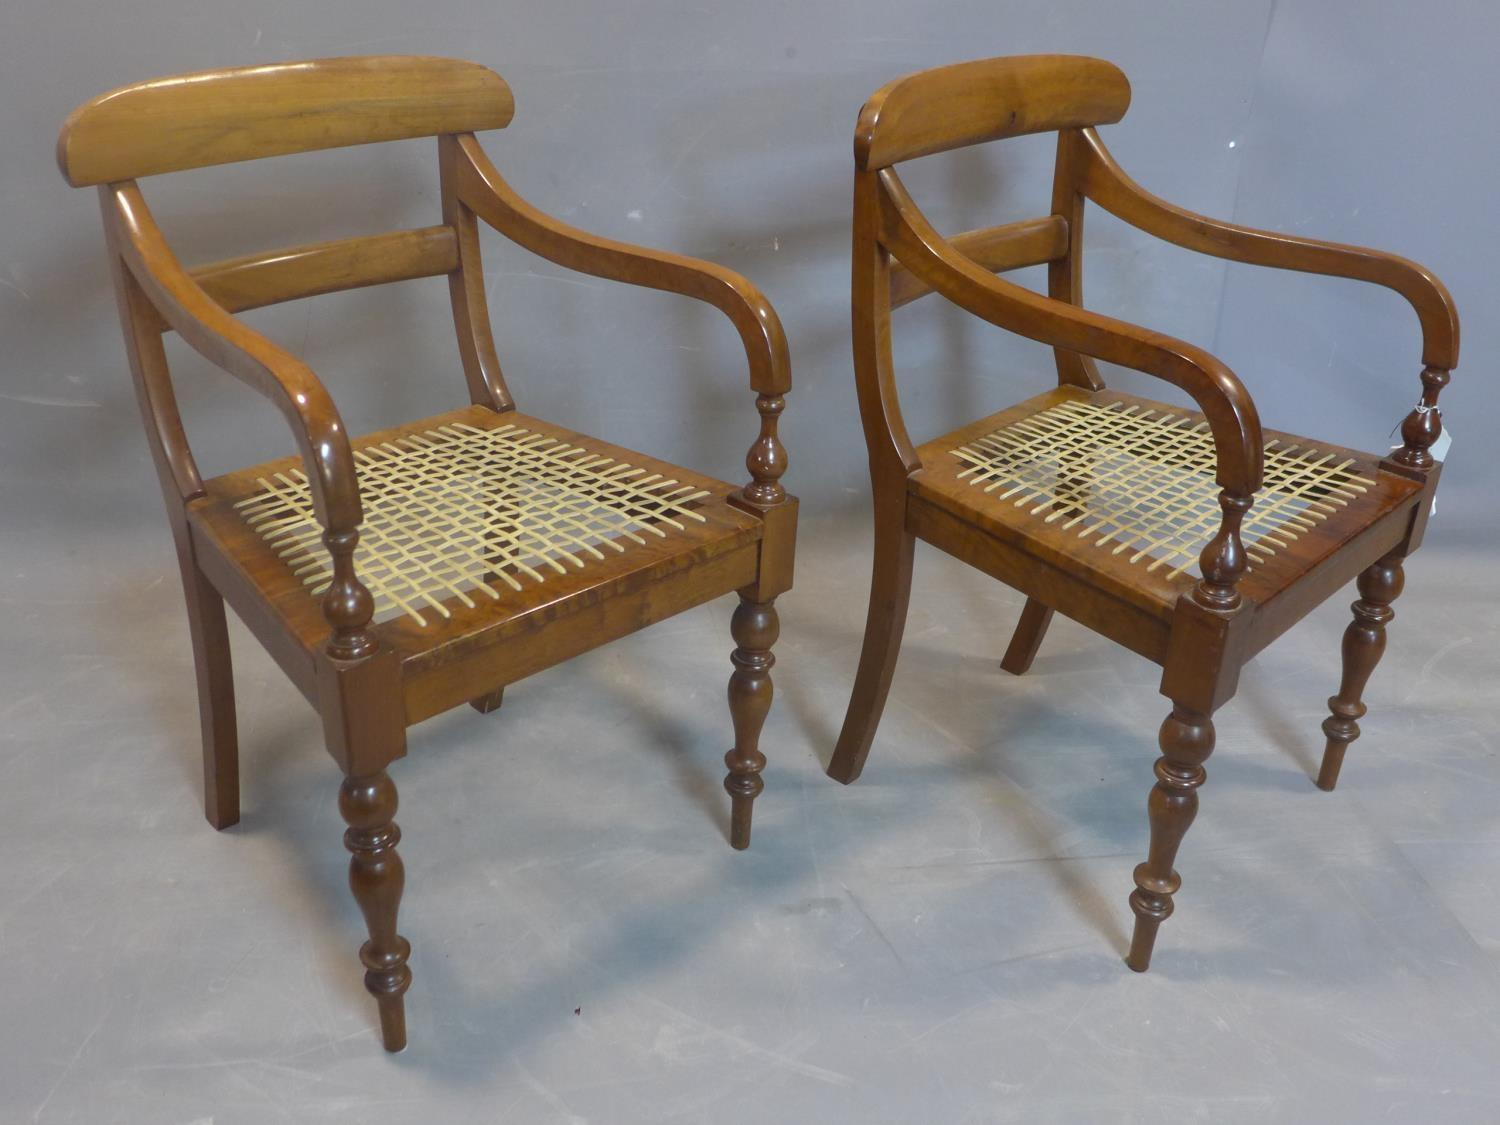 Lot 113 - A pair of 19th century mahogany scroll armchairs, on turned baluster supports, having hide cord